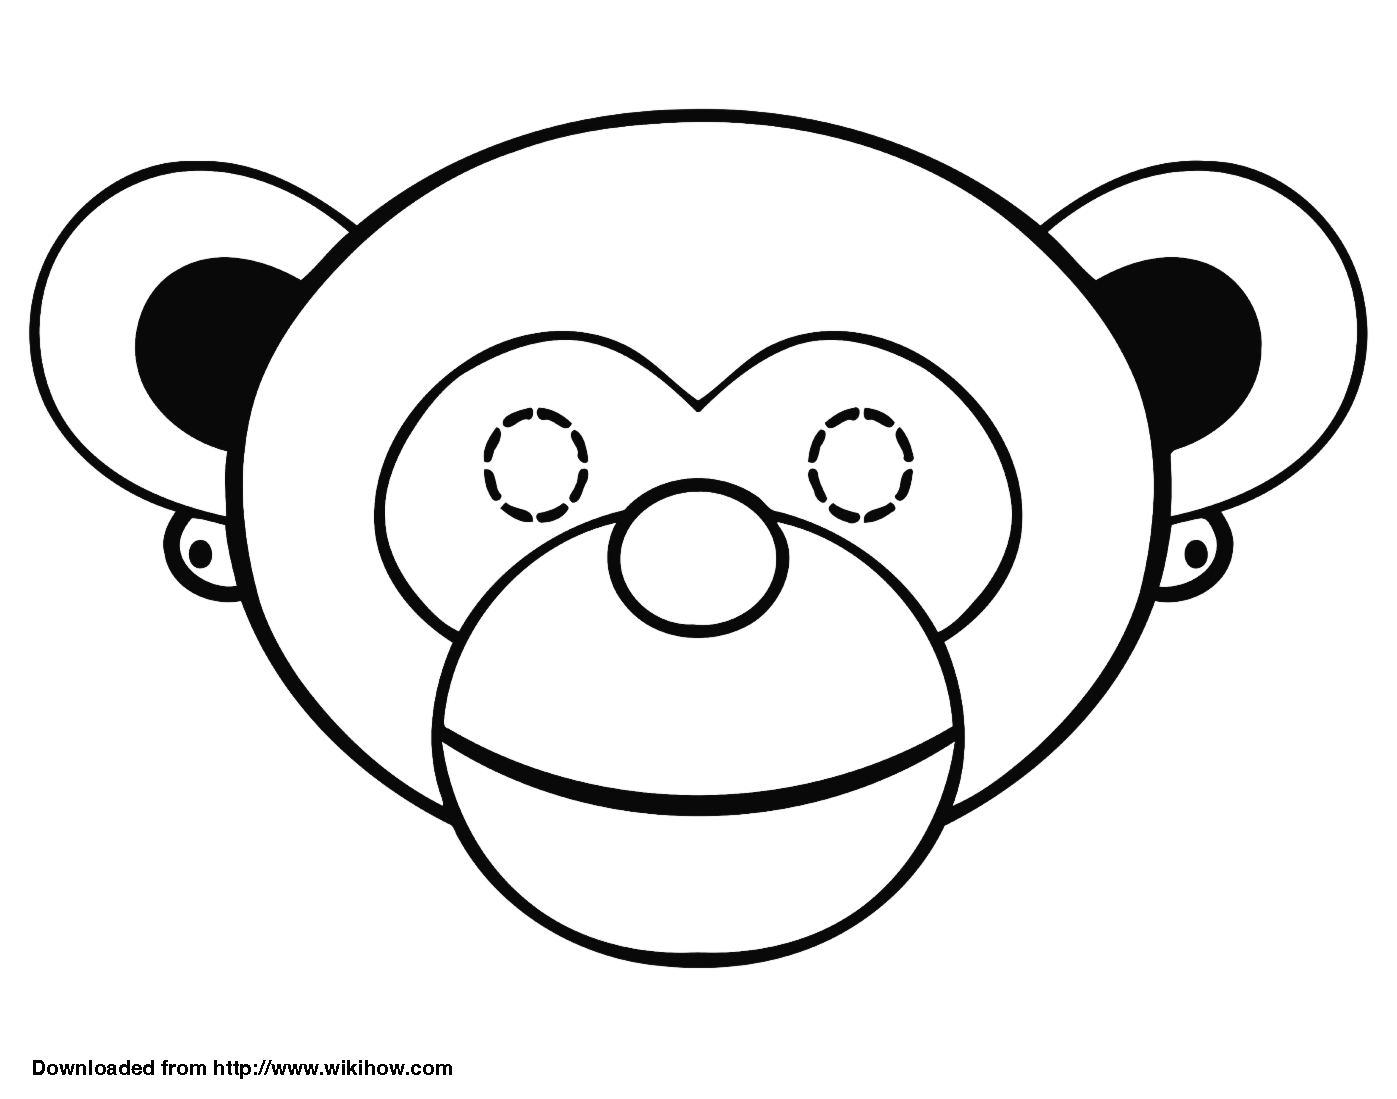 How To Make A Monkey Mask 13 Steps With Pictures